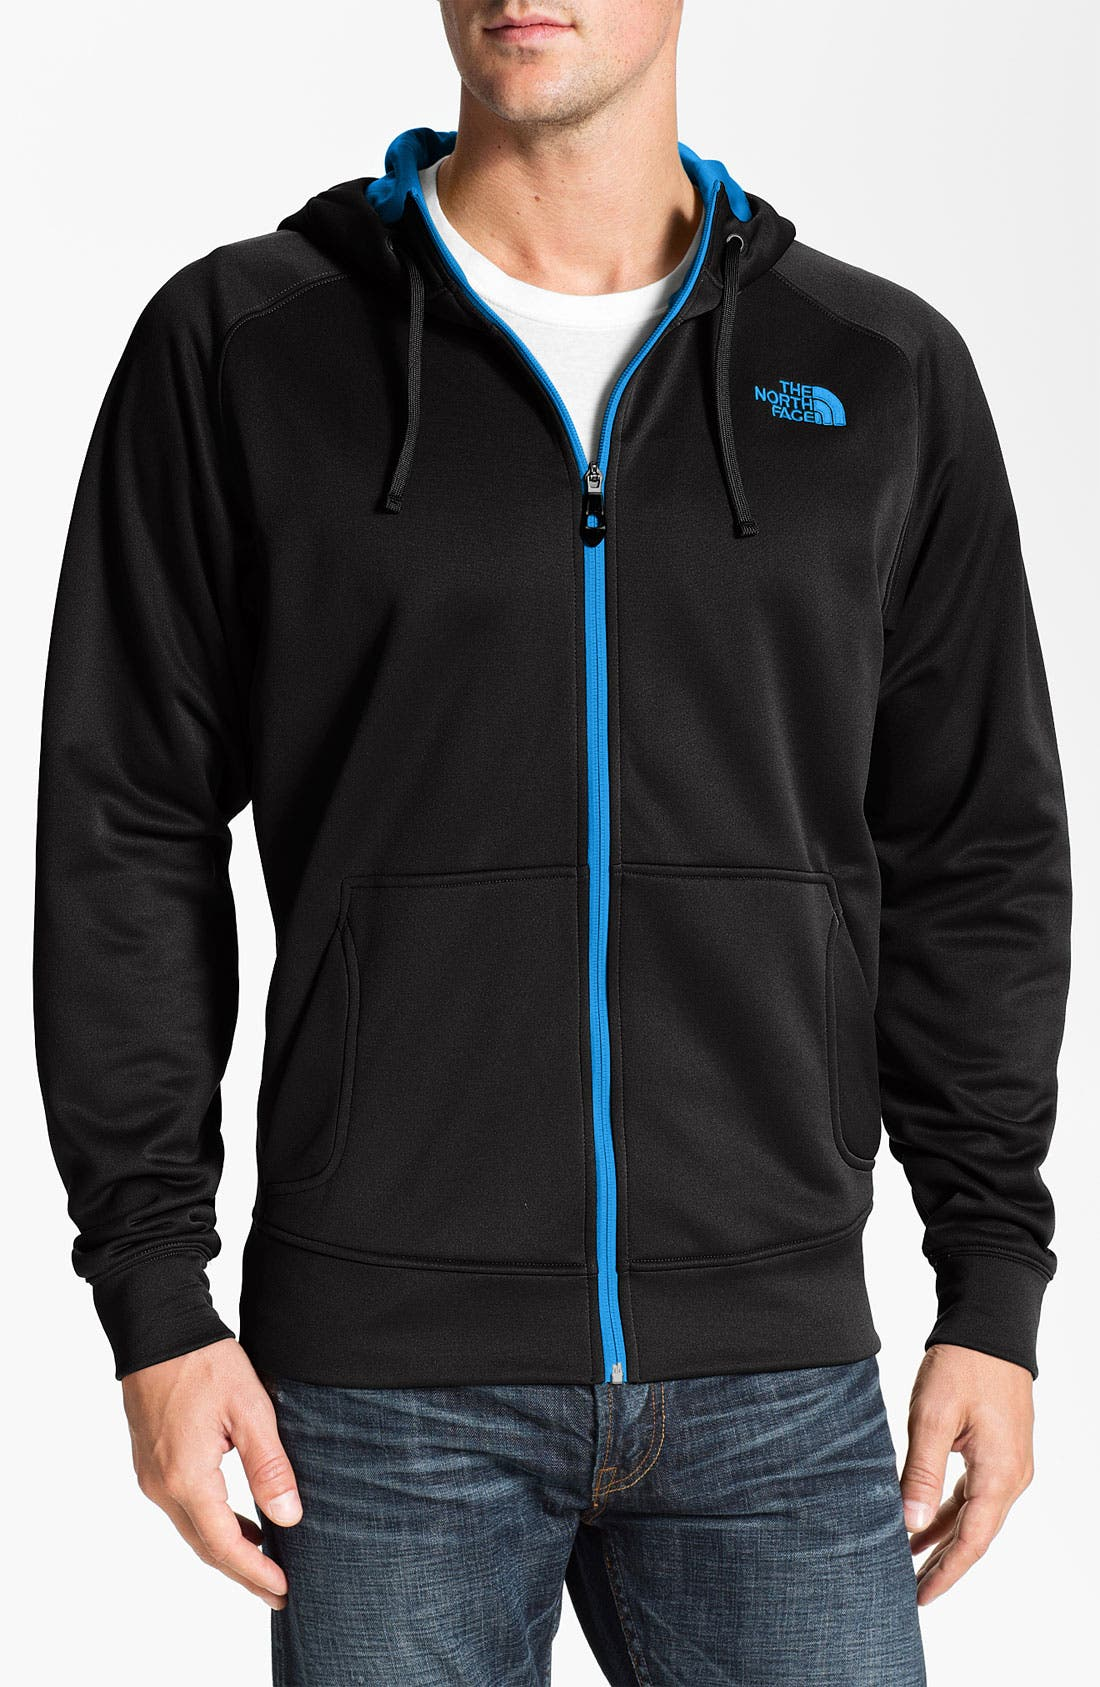 Alternate Image 1 Selected - The North Face 'Cowells' Zip Hoodie